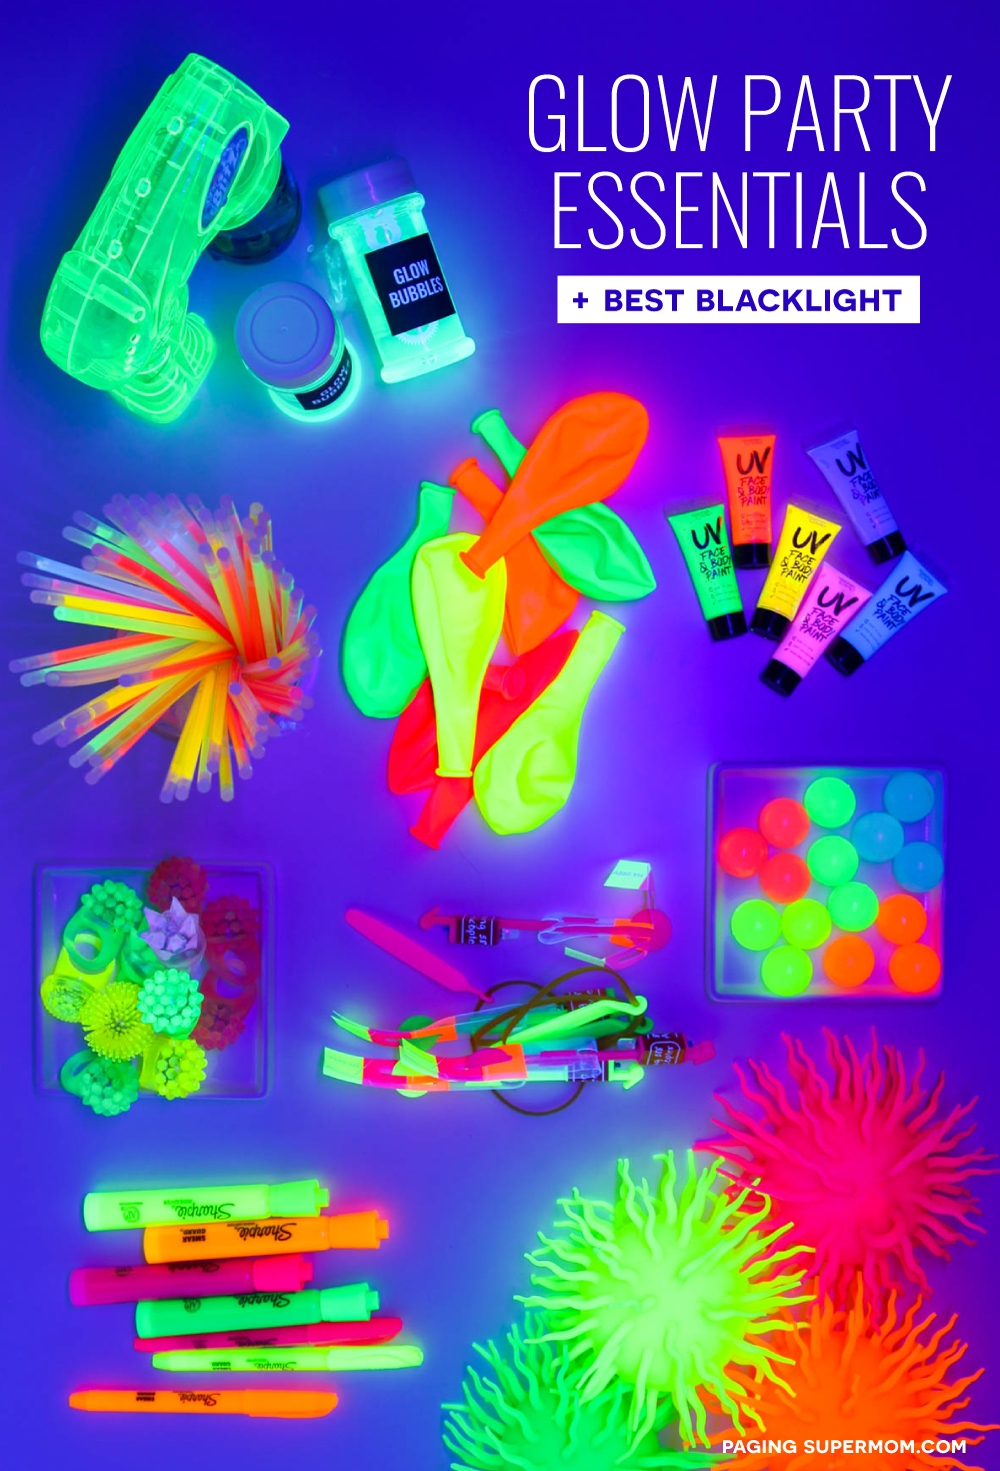 10 Lovely Glow In The Dark Party Ideas glow party ideas ultimate guide how to throw a black light party 1